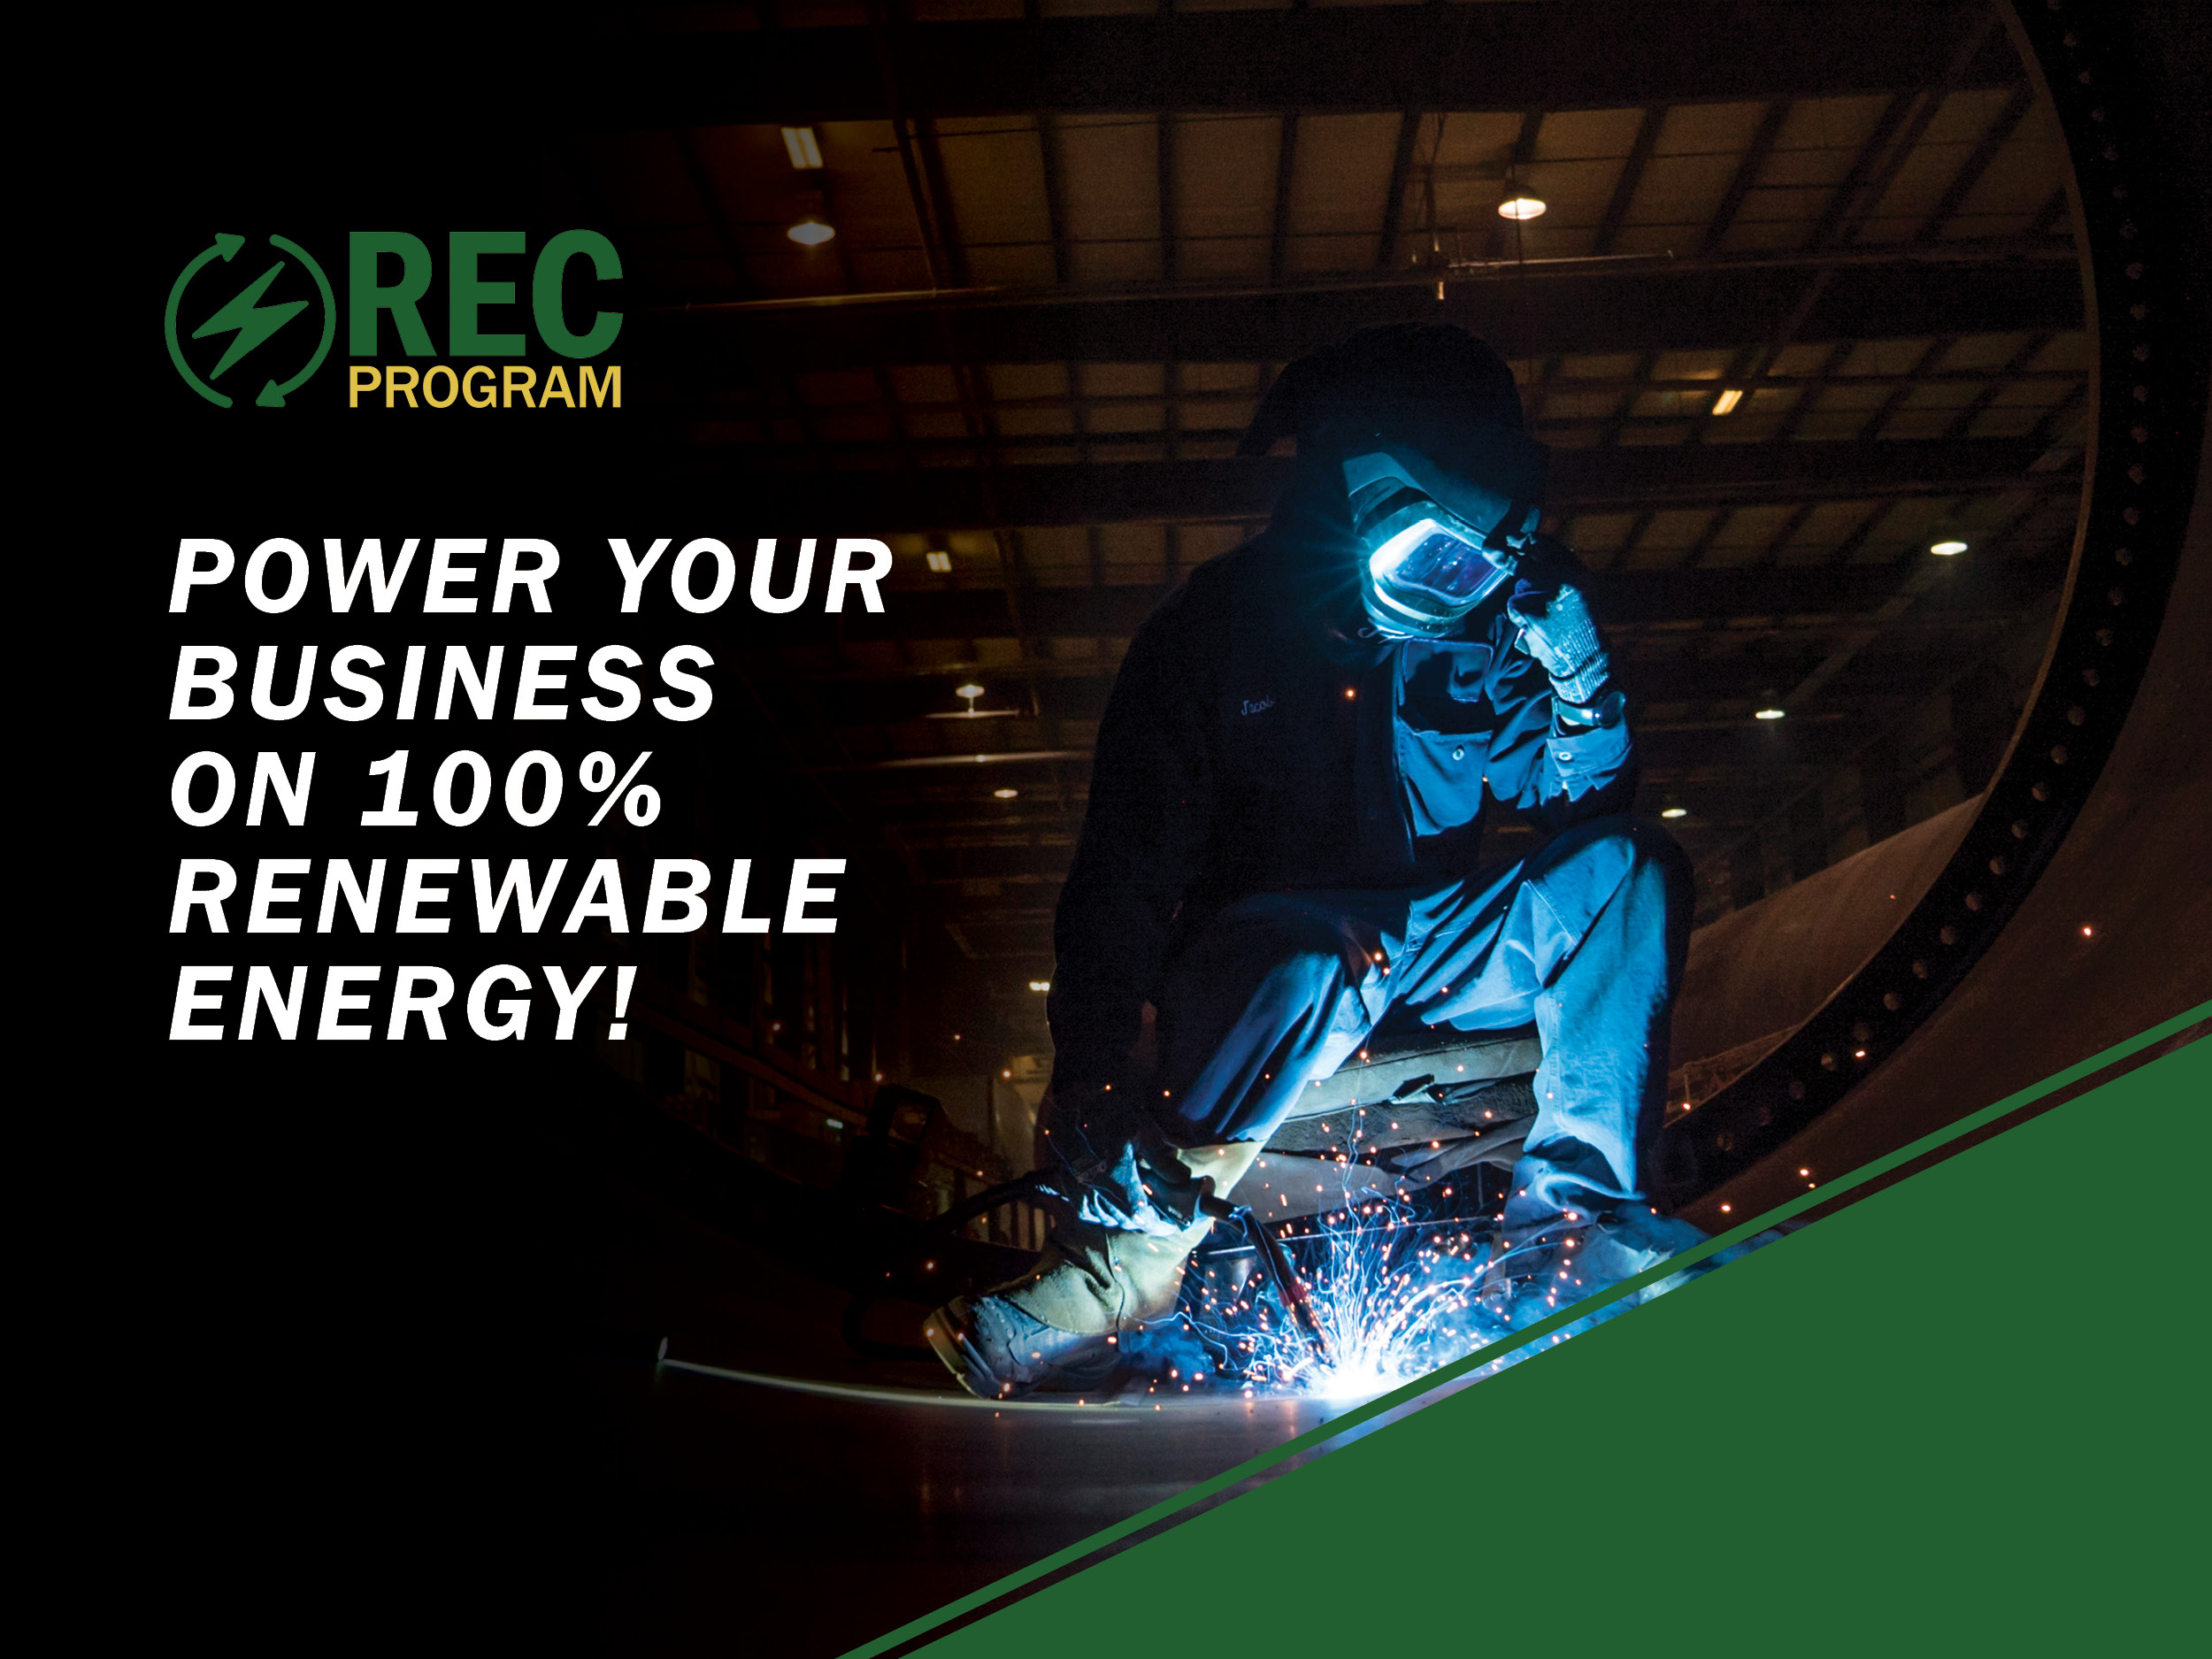 Power your Business on 100% renewable